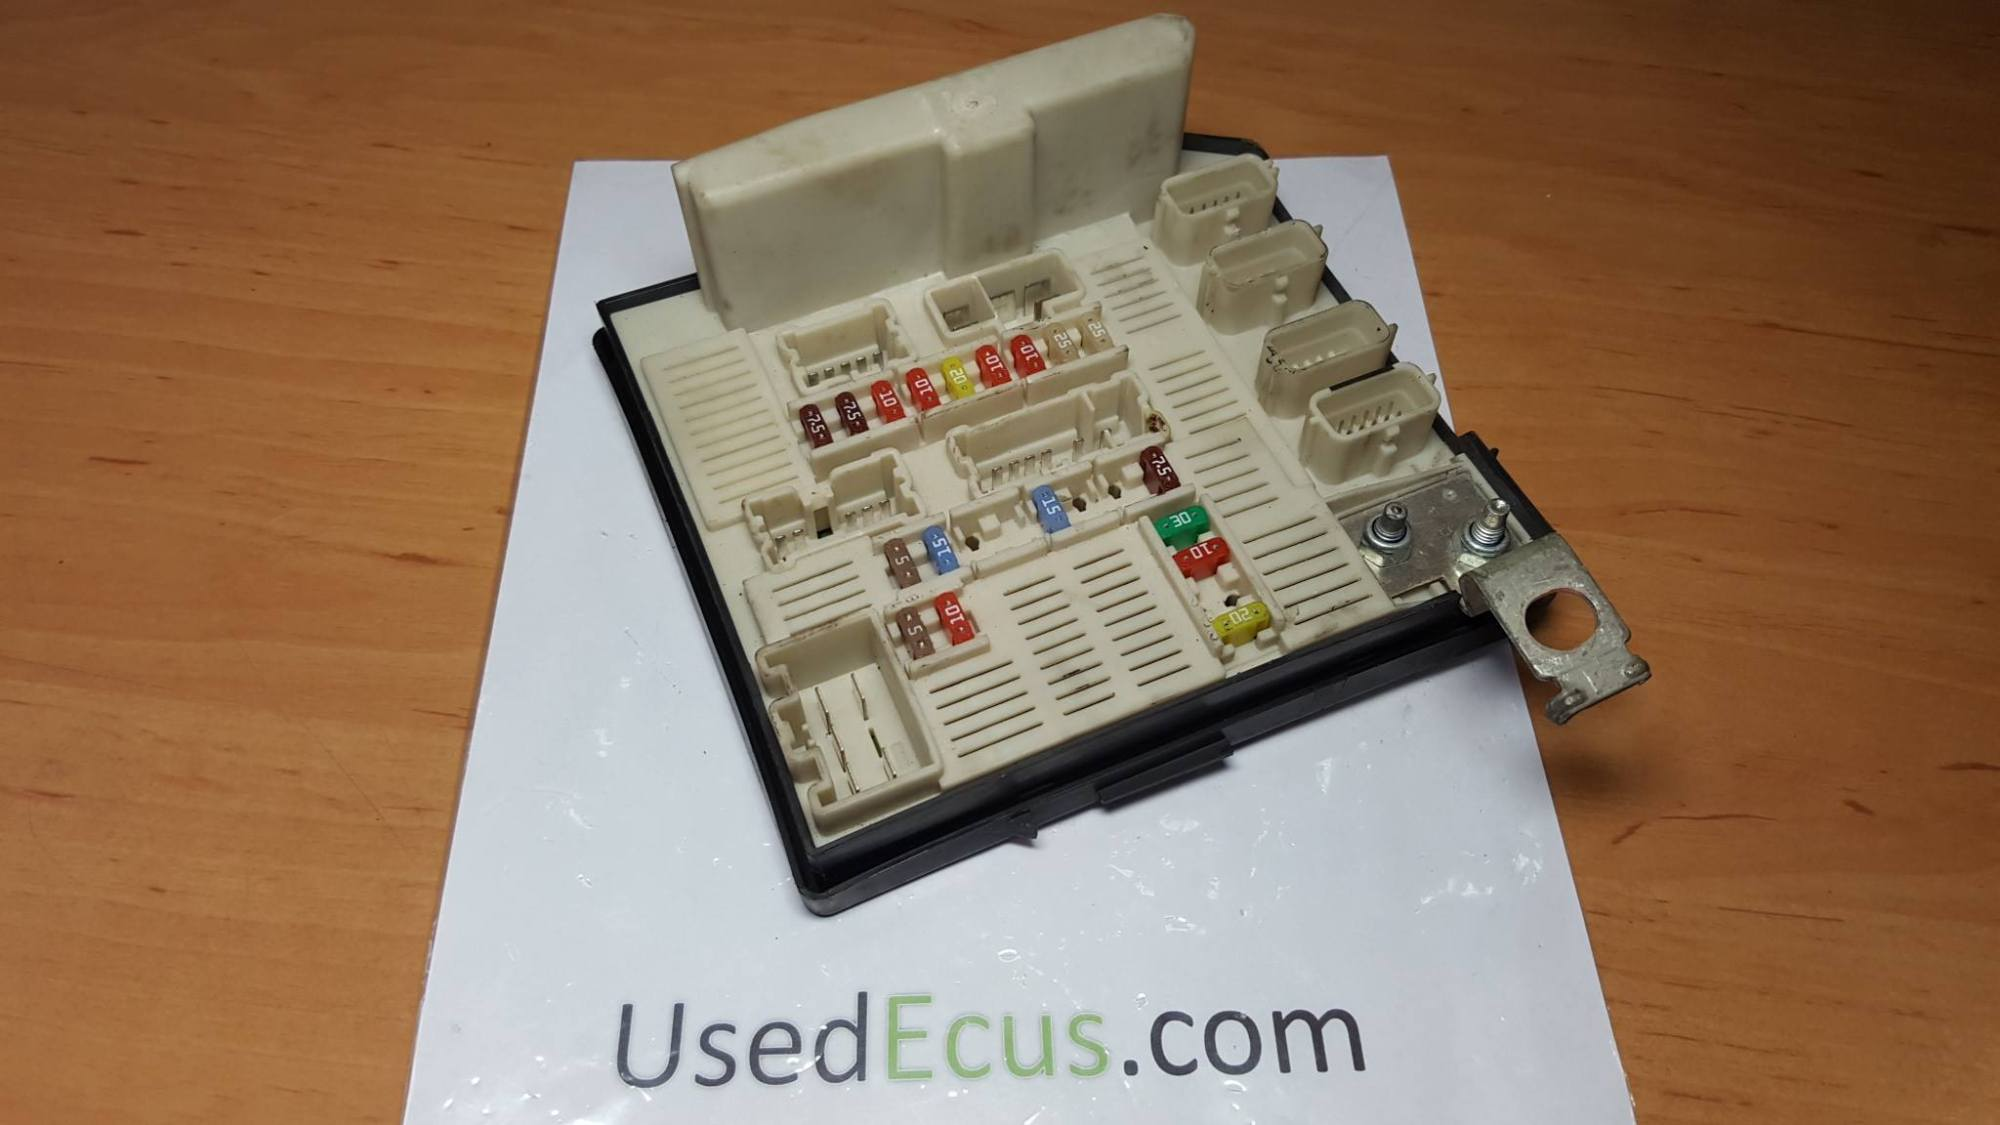 hight resolution of renault megane scenic 2007 1 5 dci fuse box unit usm c pft article 8200481866 h 519158091 8710947008 8200481866